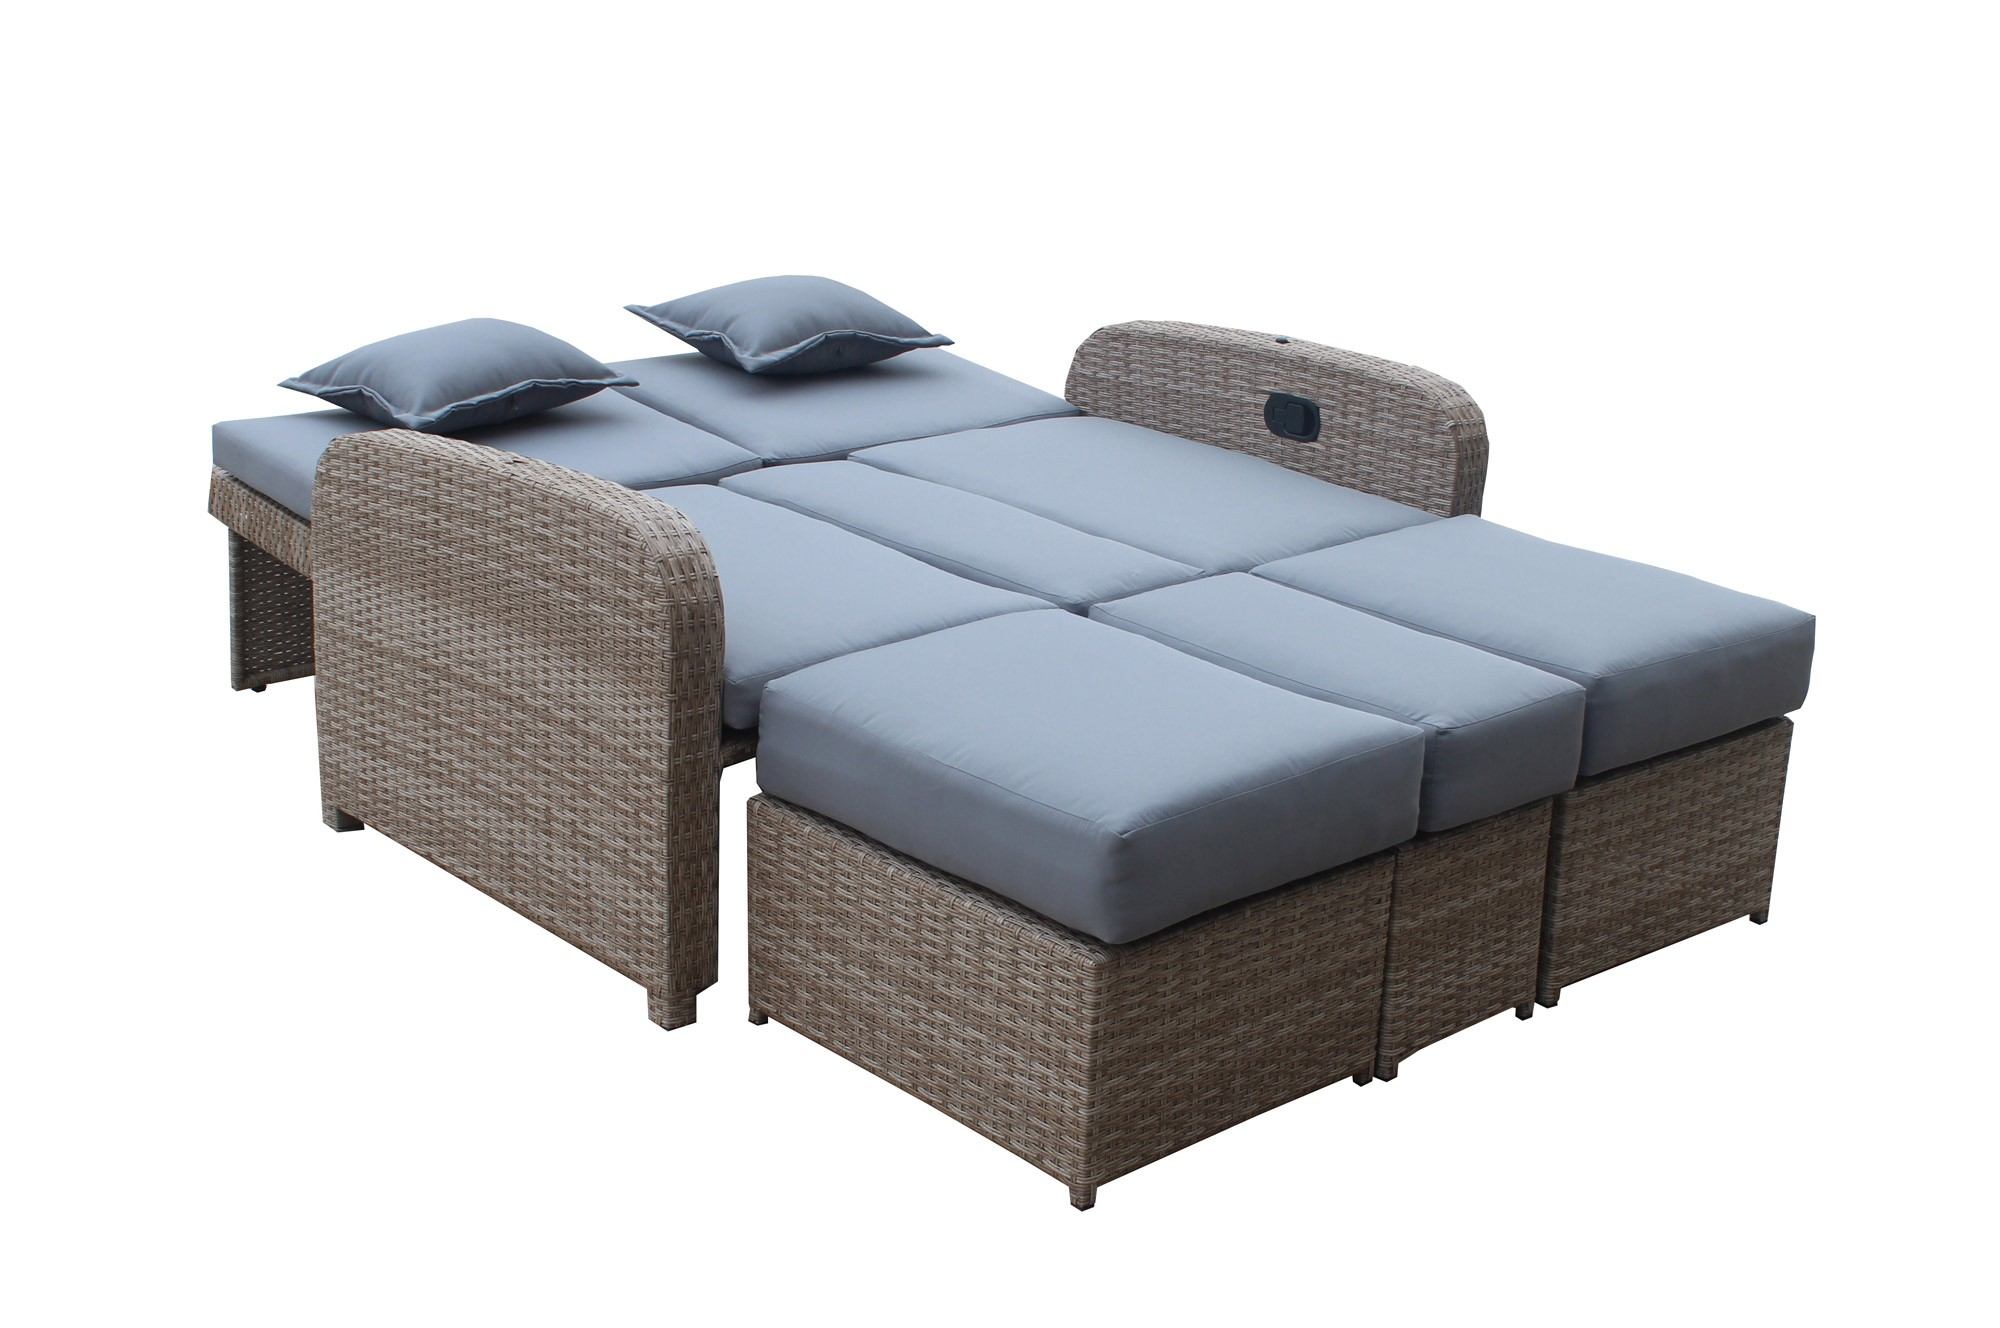 gartensofa mit dach ls99 kyushucon. Black Bedroom Furniture Sets. Home Design Ideas